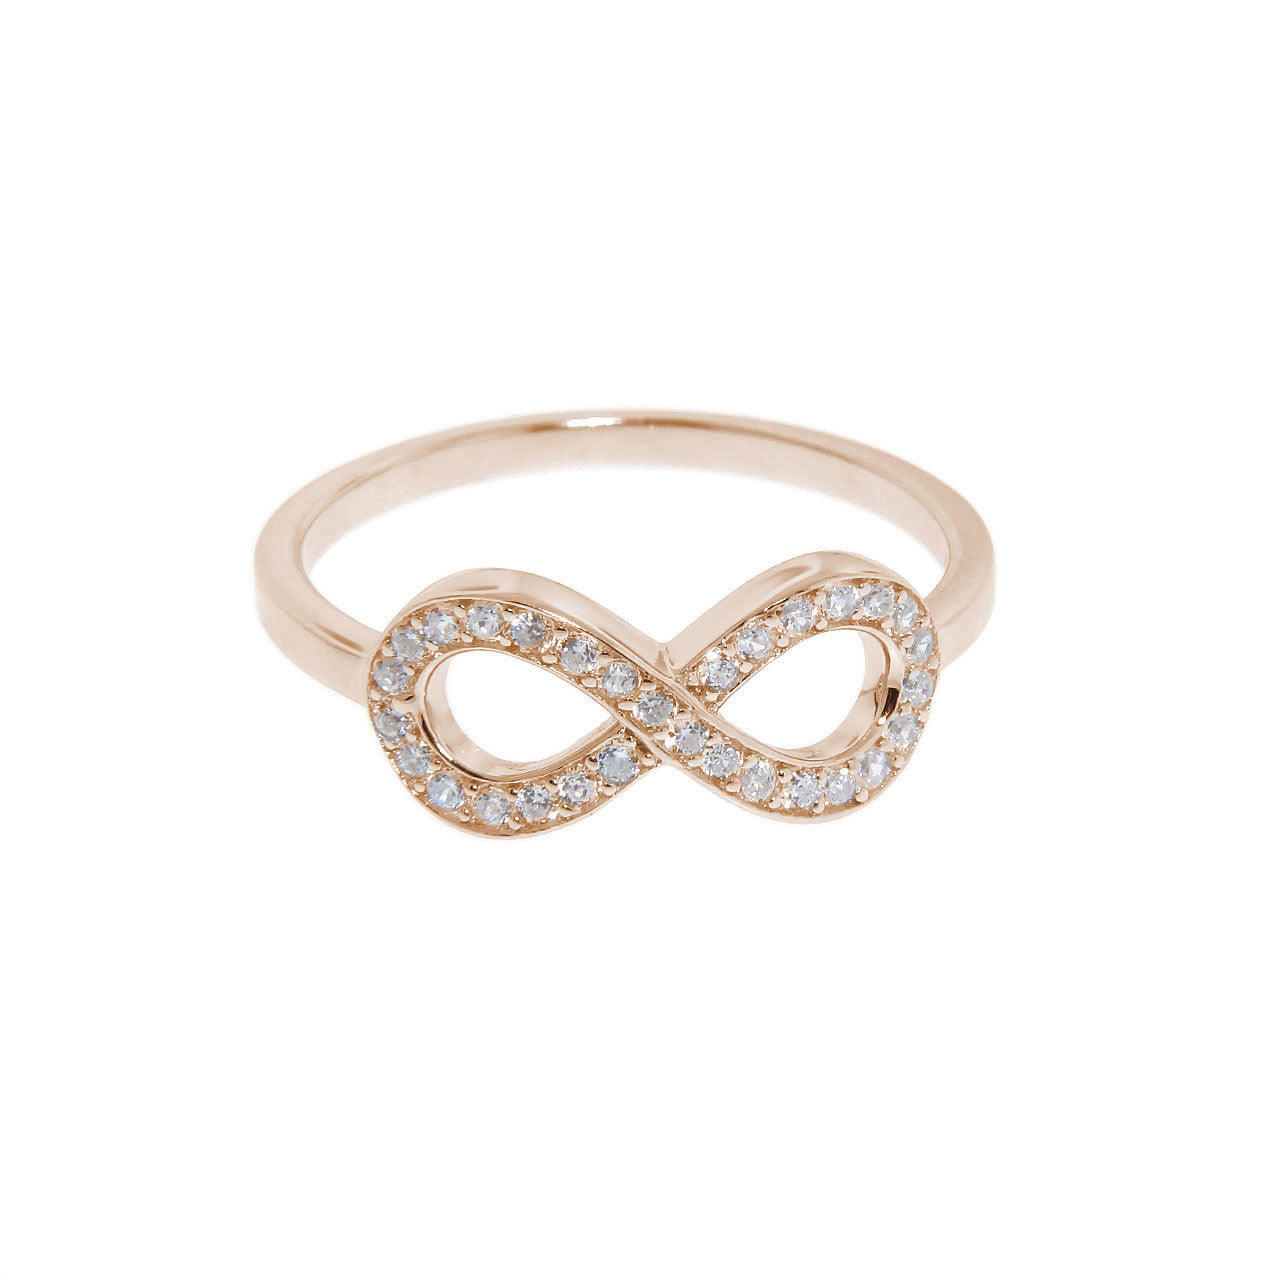 ring sterling in ed fmt silver m rings infinity jewelry fit hei wid constrain id co tiffany